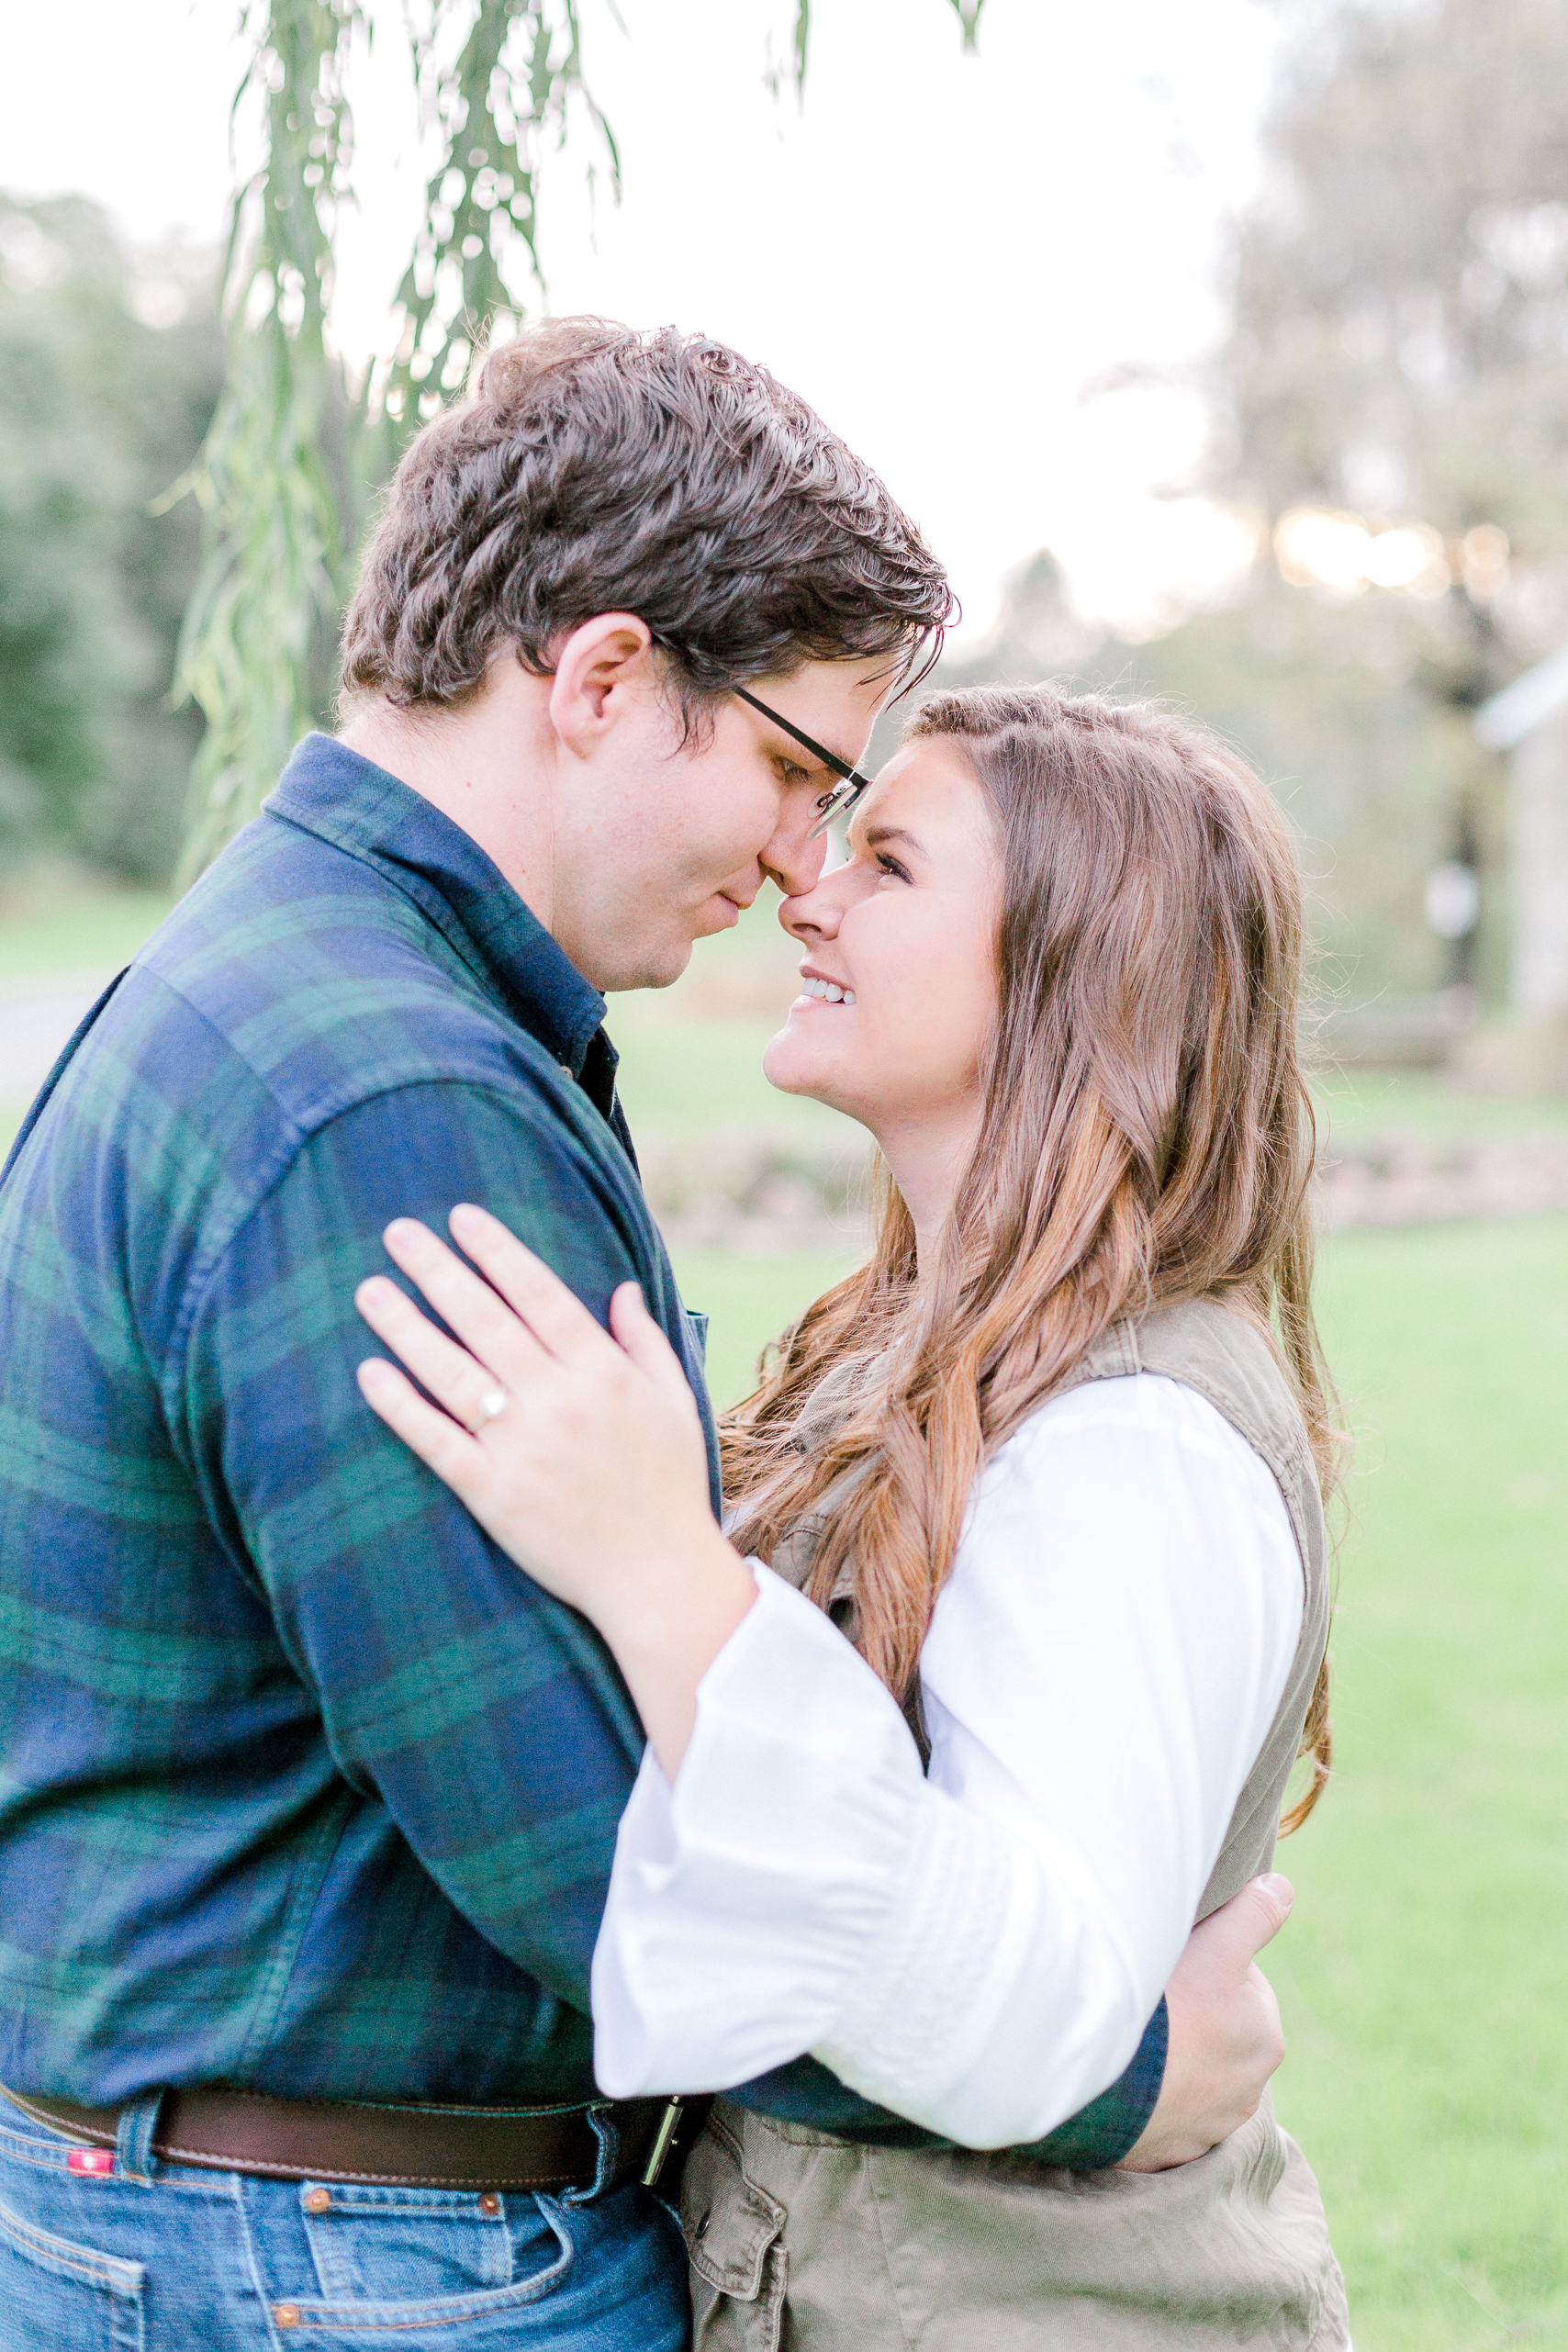 Lehigh valley Fish hatchery fall Engagement Session wedding and lifestyle photographer Lytle Photo Co (50 of 66).jpg